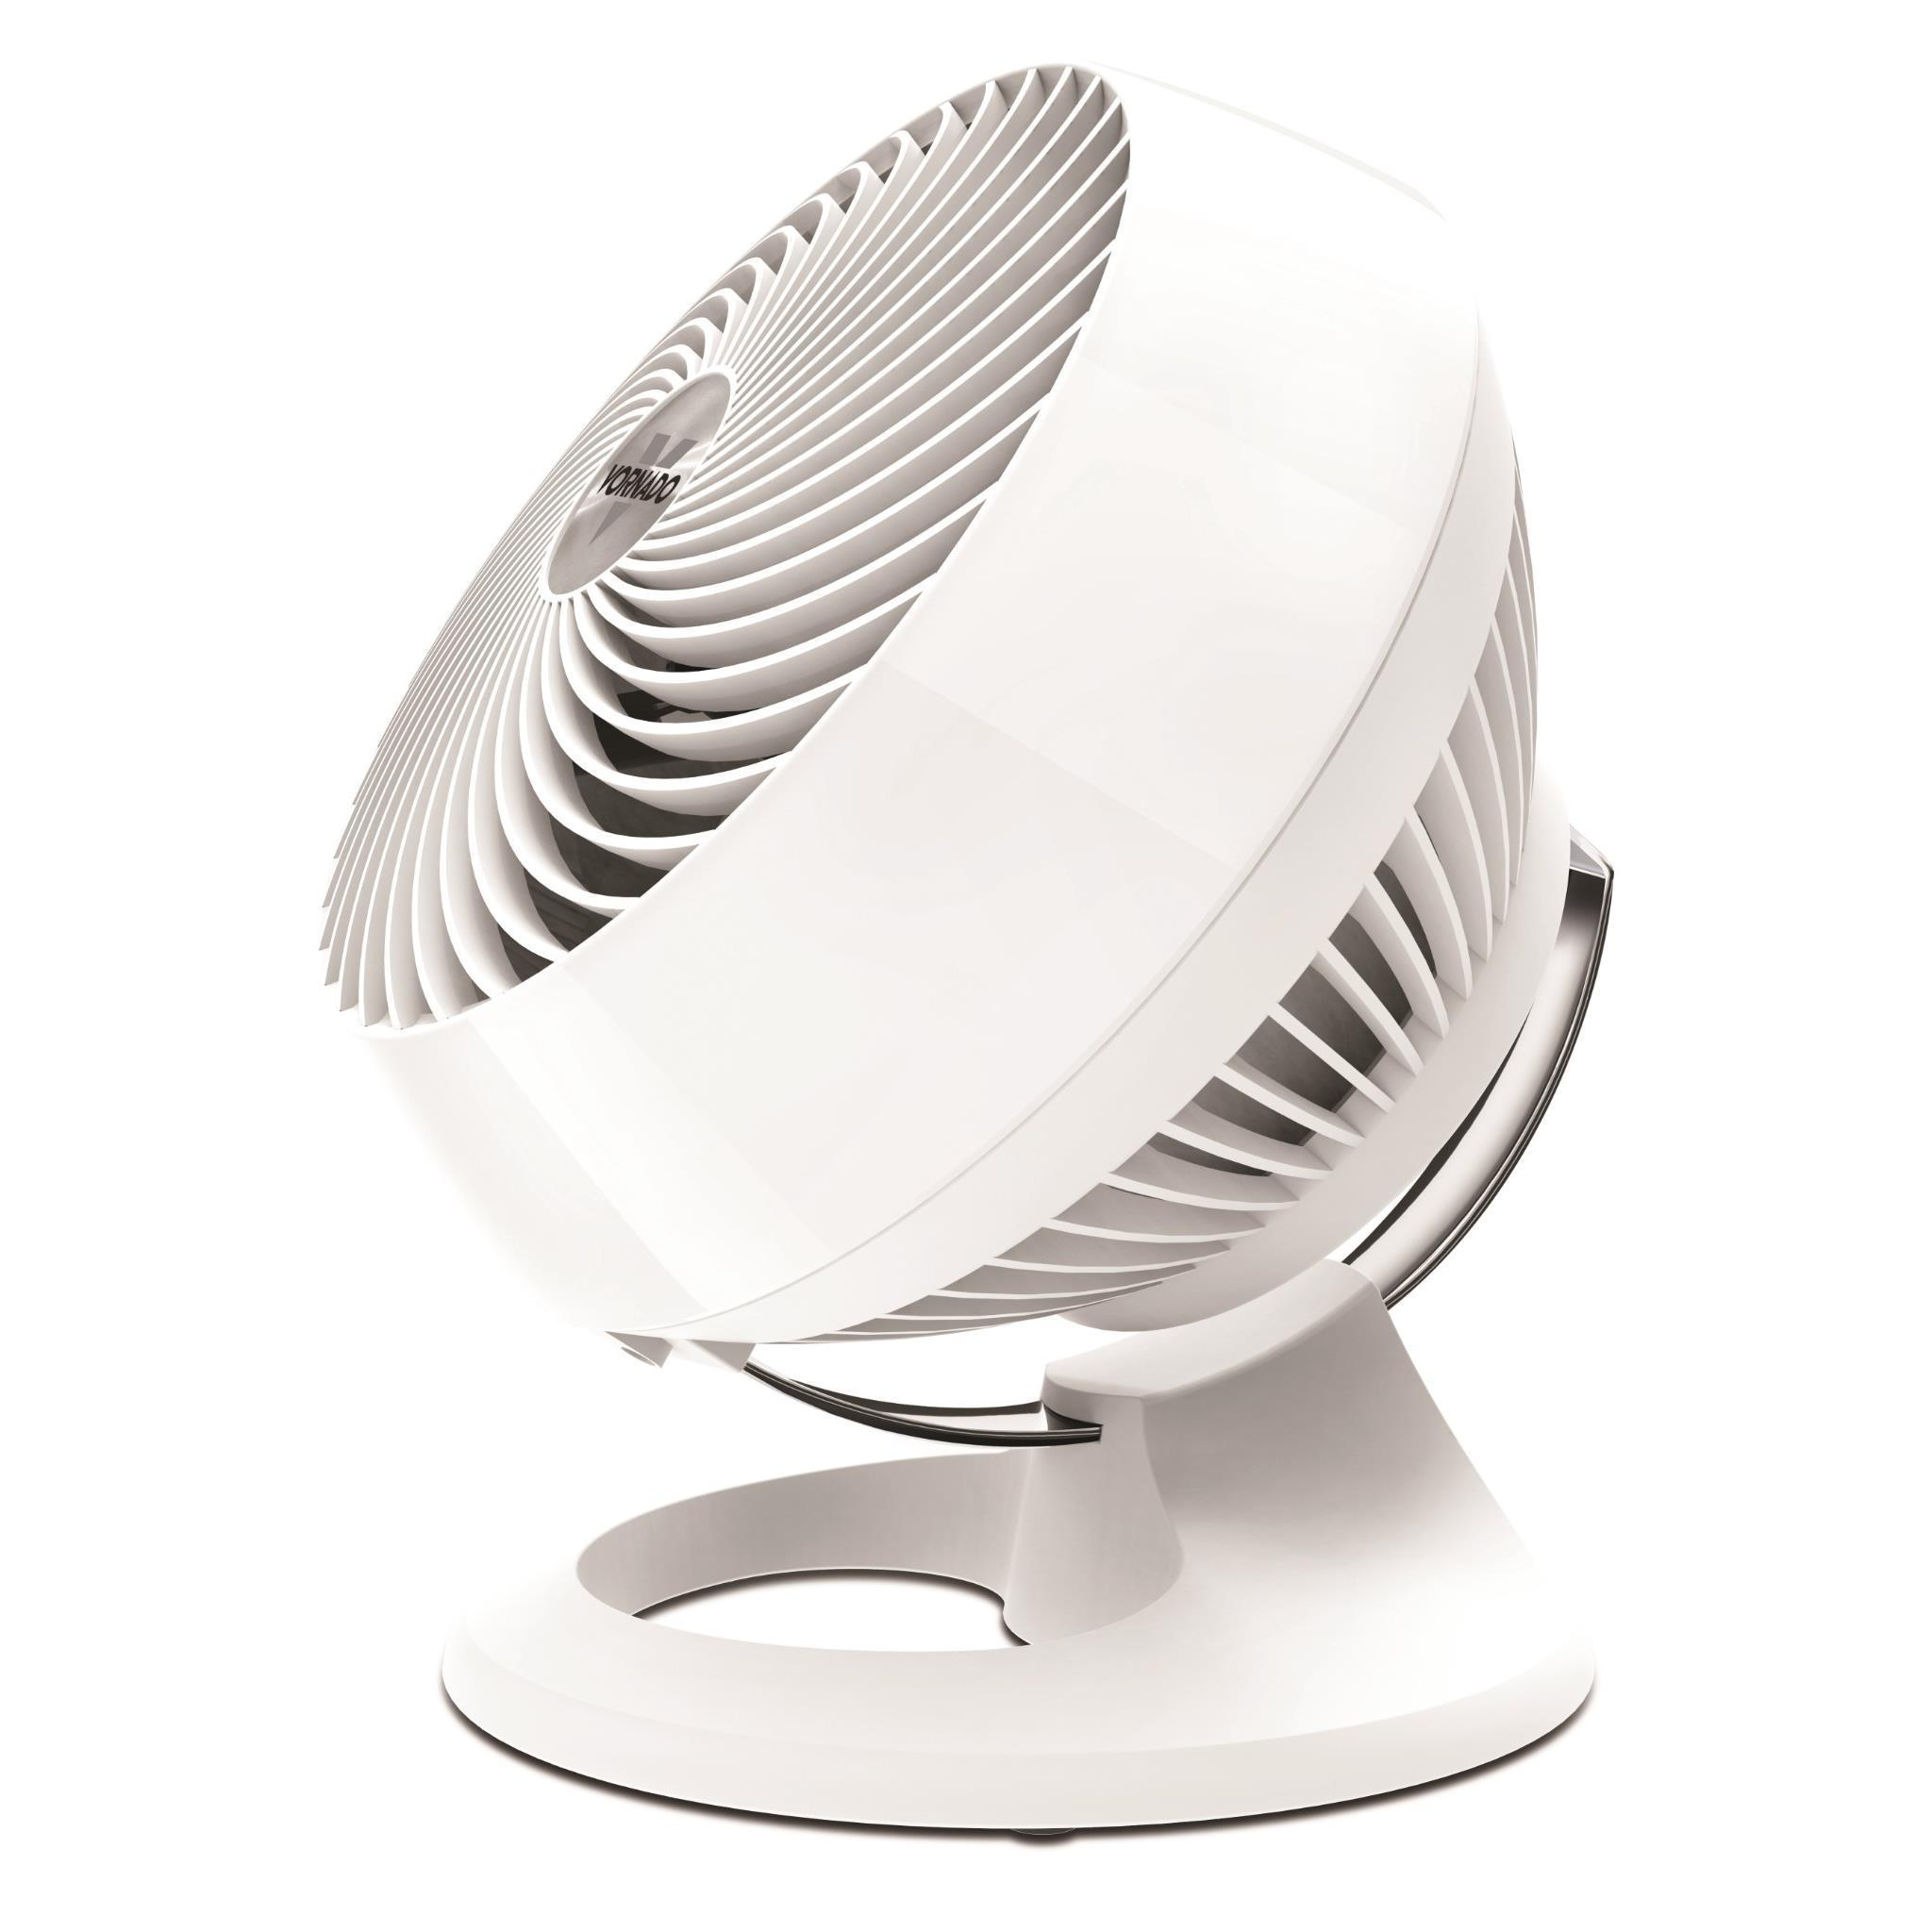 Vornado 660 Air Circulator Floor Fan (White)